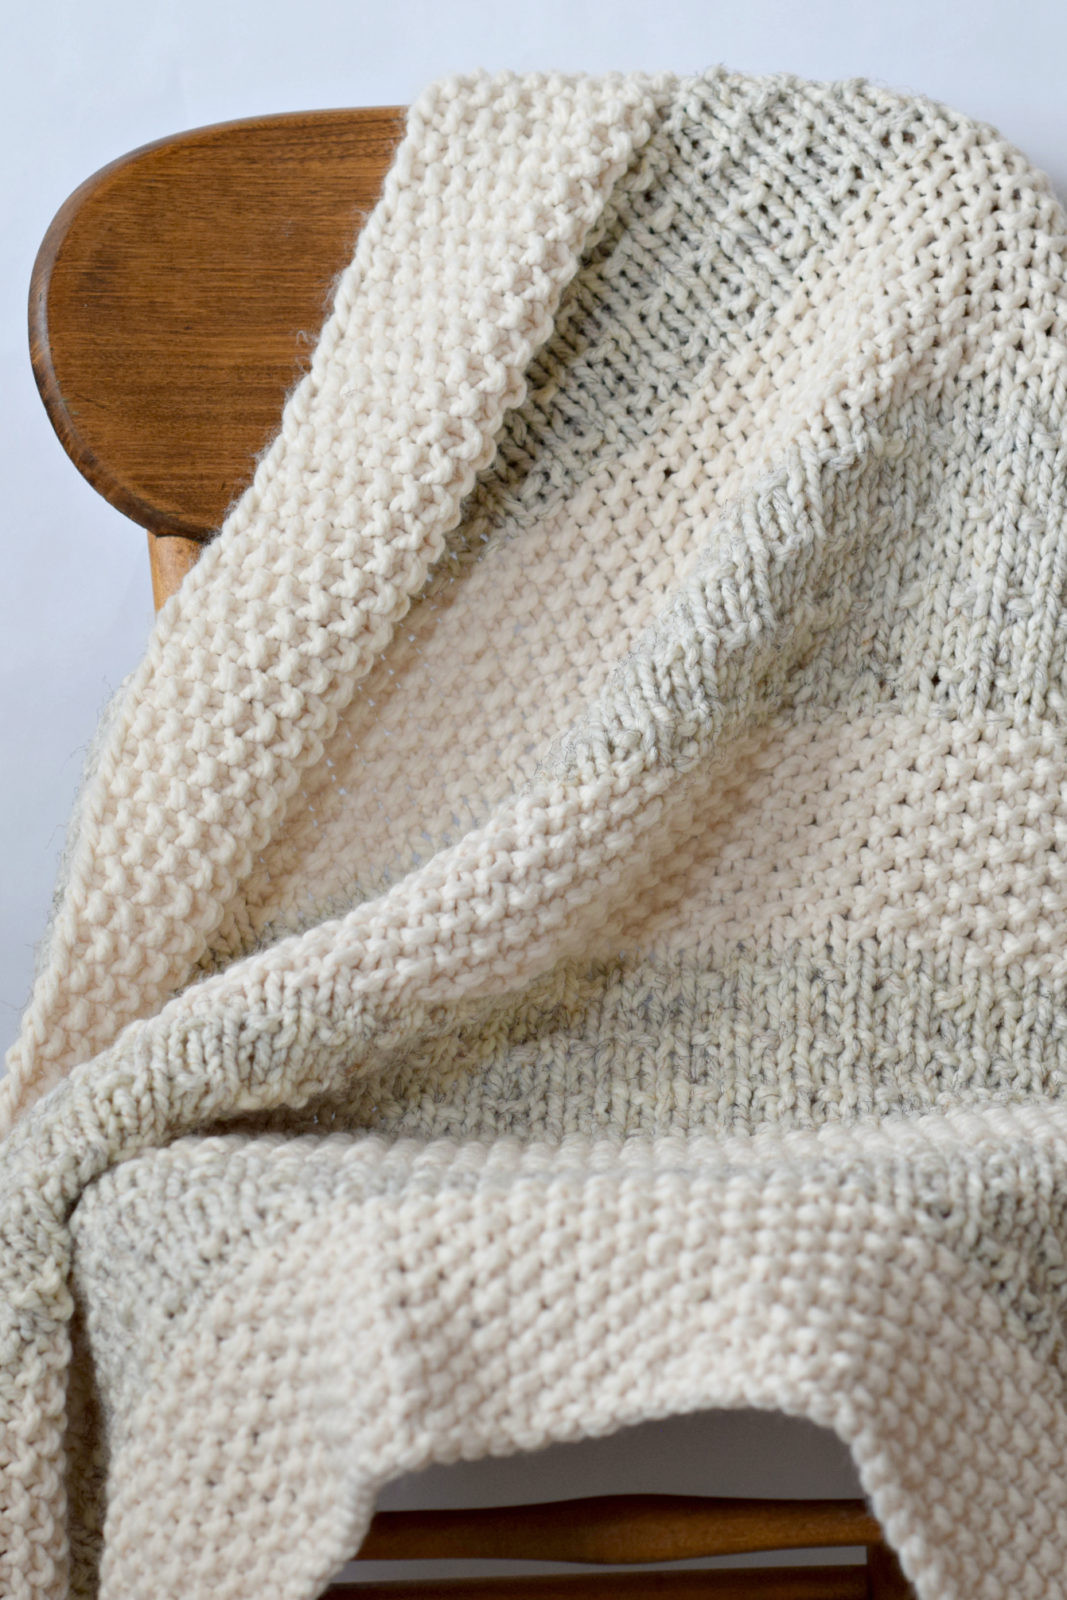 Knitting Luxury Easy Heirloom Knit Blanket Pattern – Mama In A Stitch Of Charming 48 Ideas Knitting